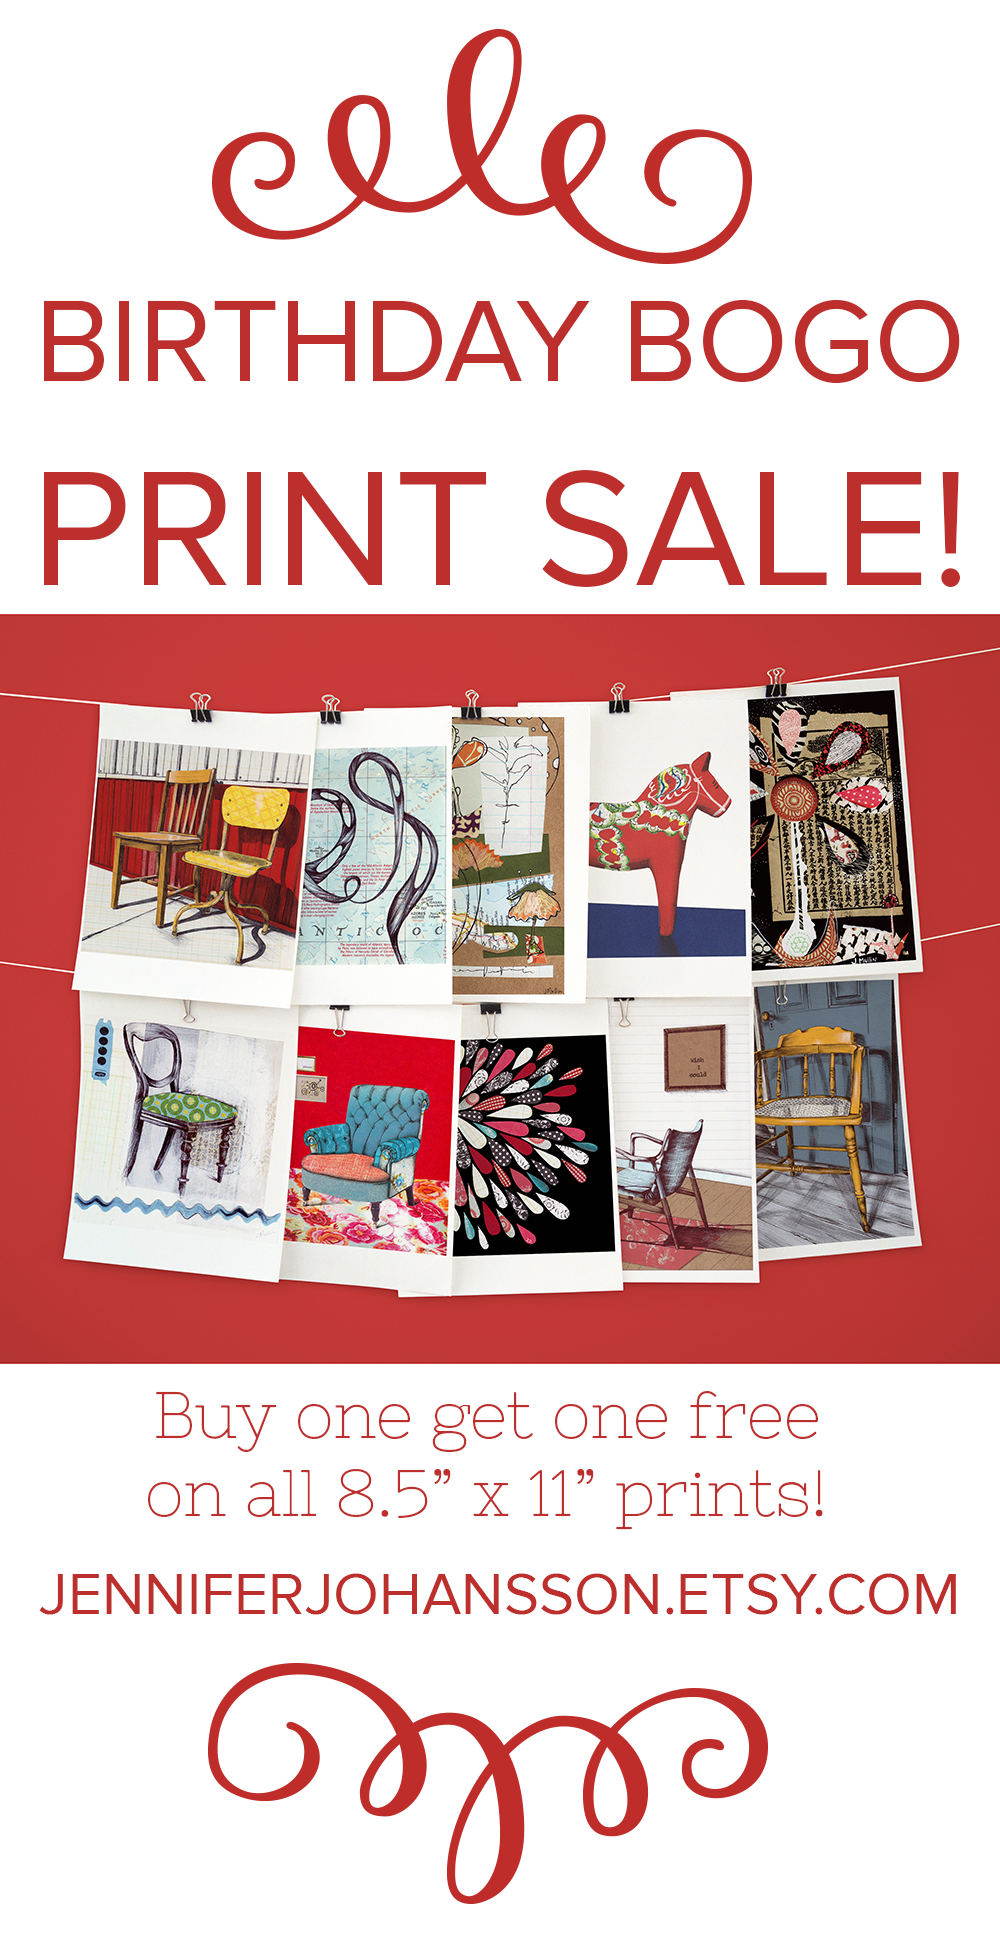 All prints are buy one get one free in my Etsy shoppe until 9/11/16. Click to shop!